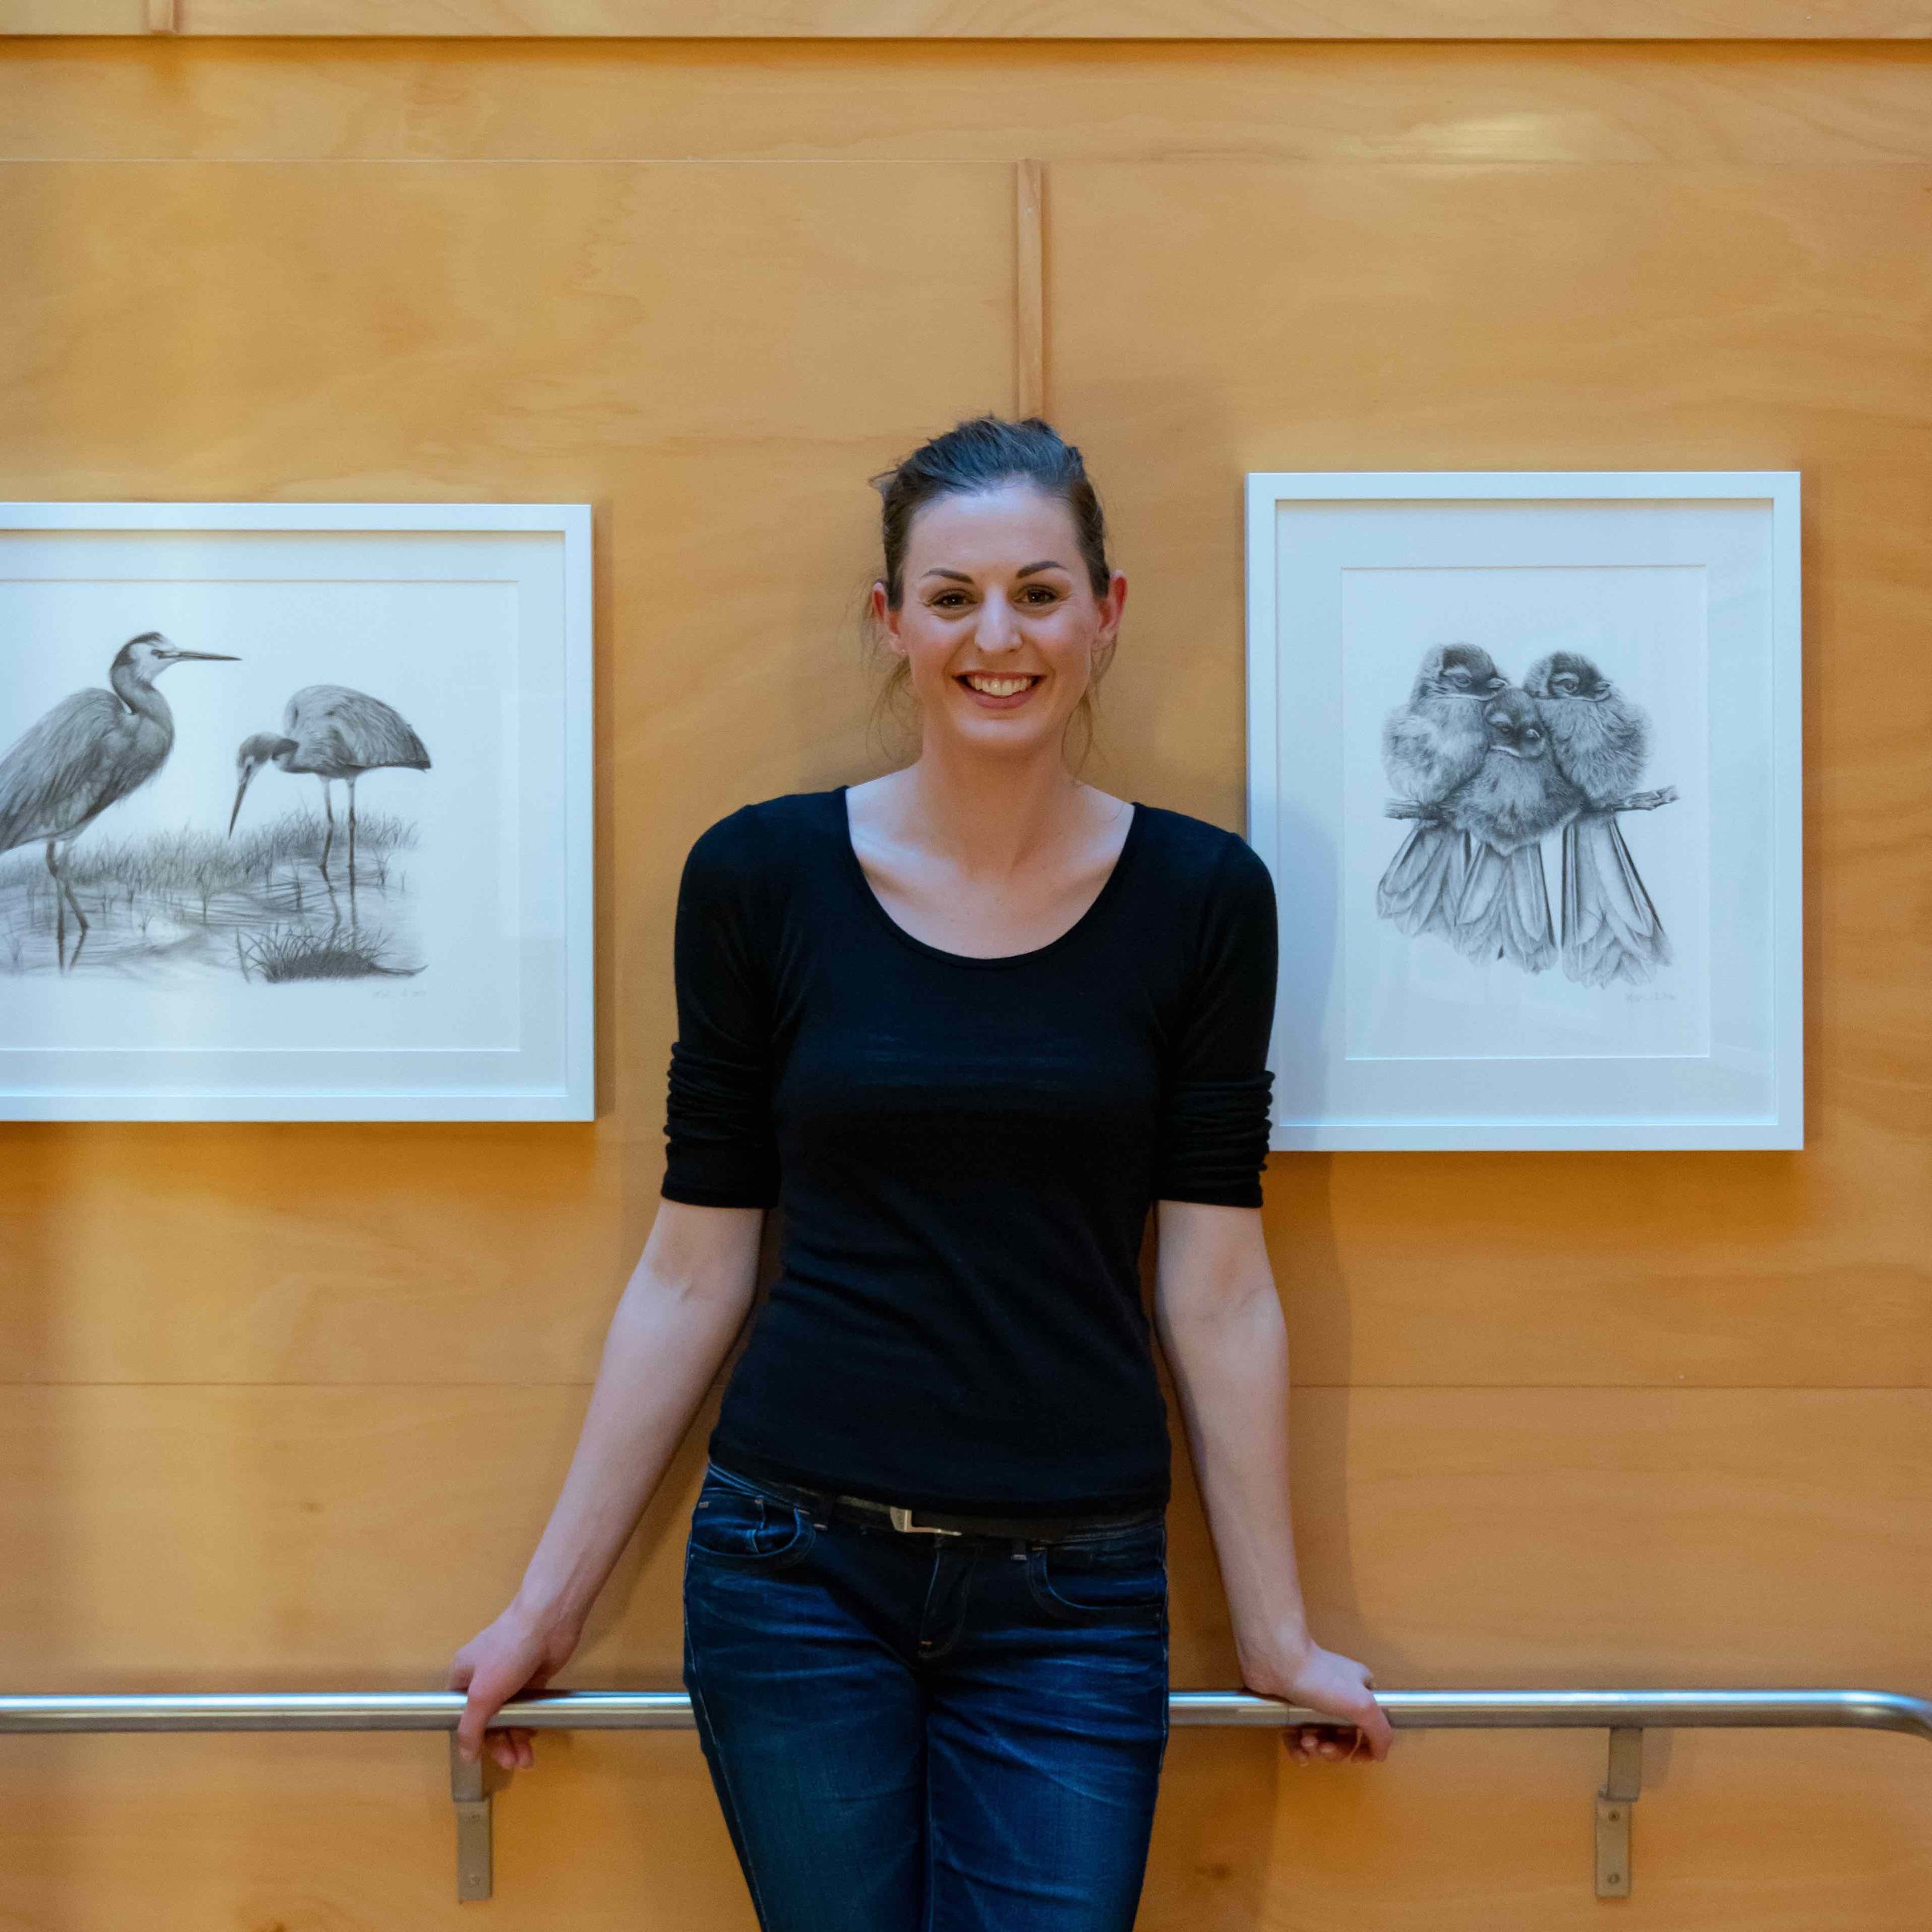 Hannah infront of her framed artwork at Zealandia.jpg